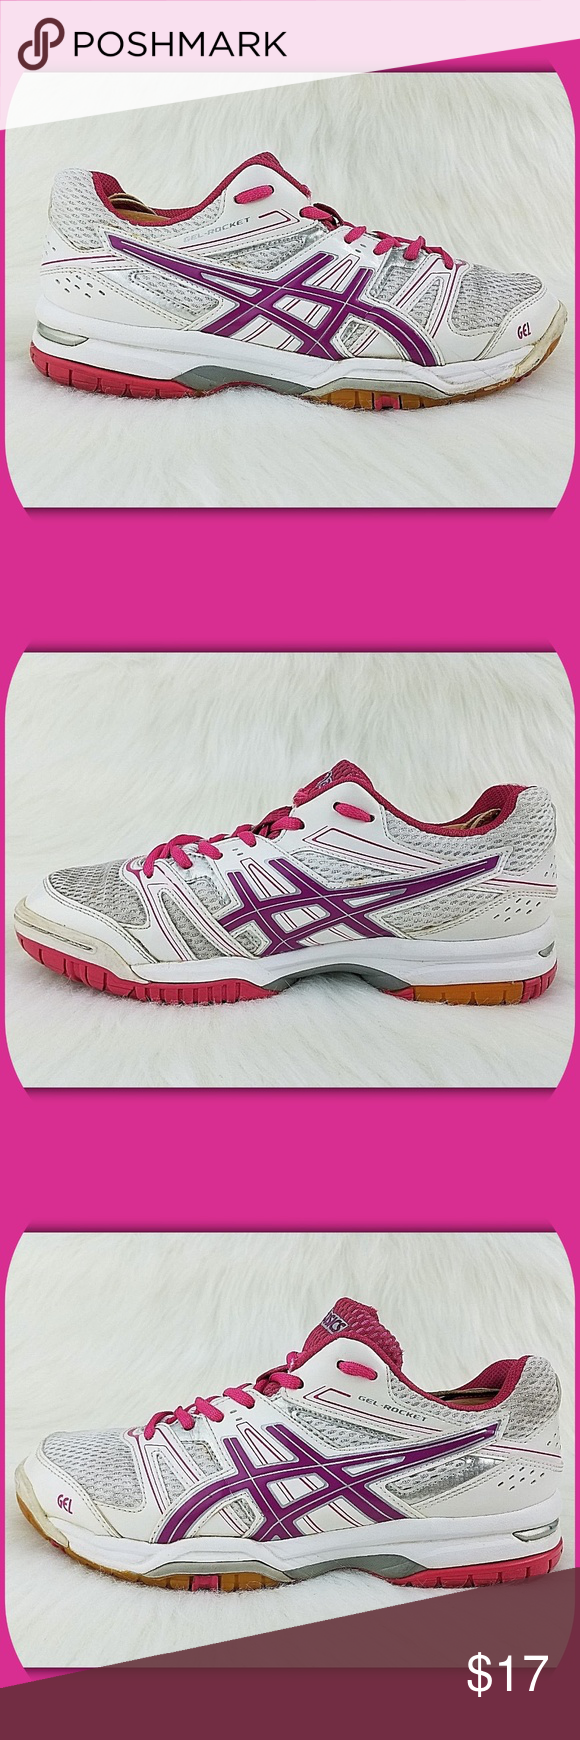 Asics Gel Rocket Volleyball Shoes Volleyball Shoes Asics Asics Women